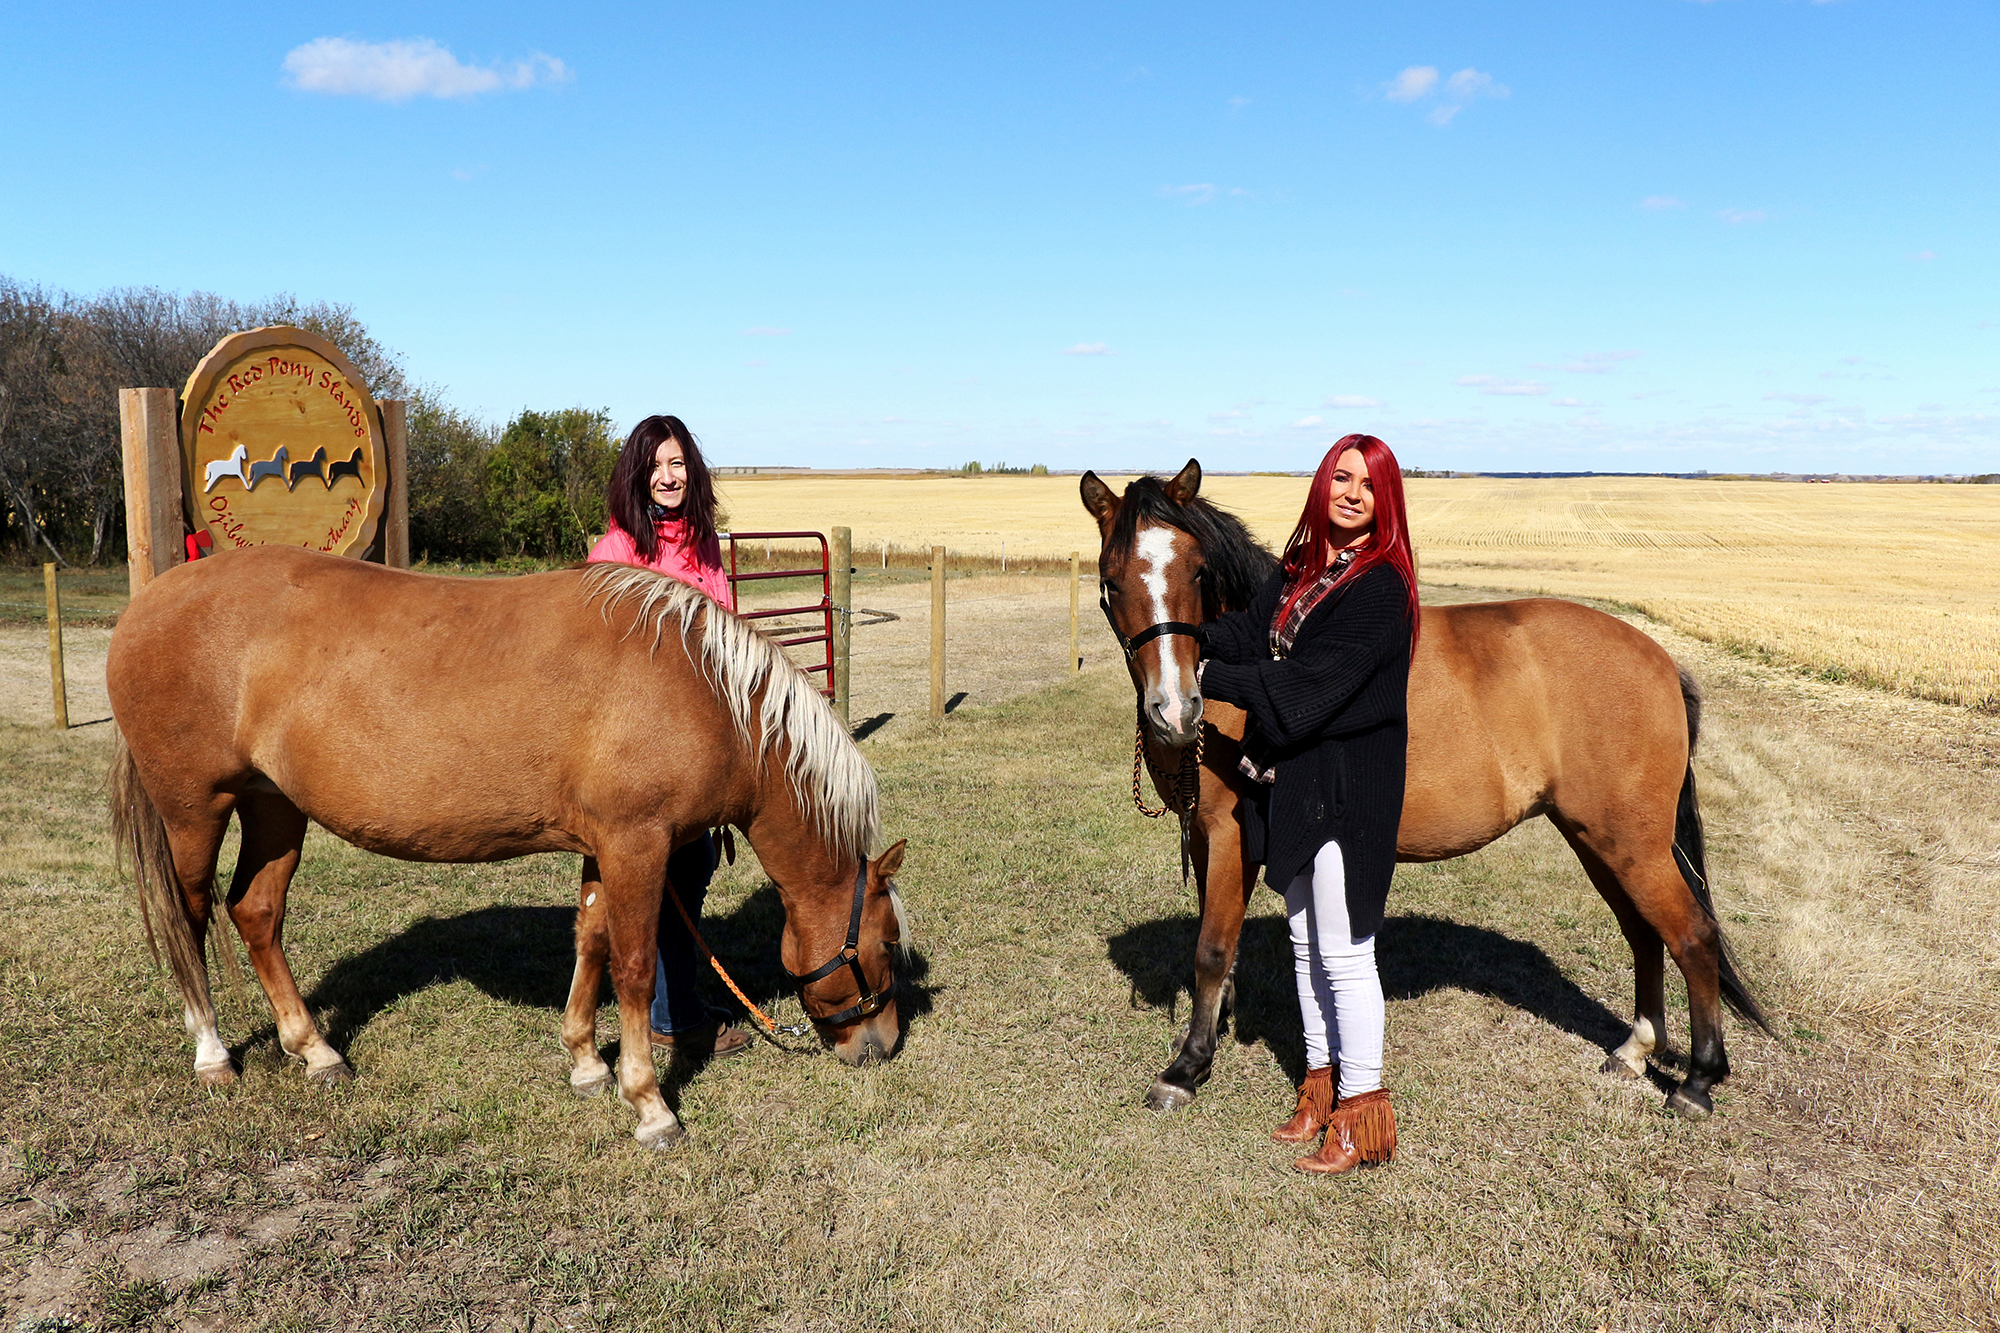 Two women stand with two horses in front of The Red Pony Stands® entrance sign